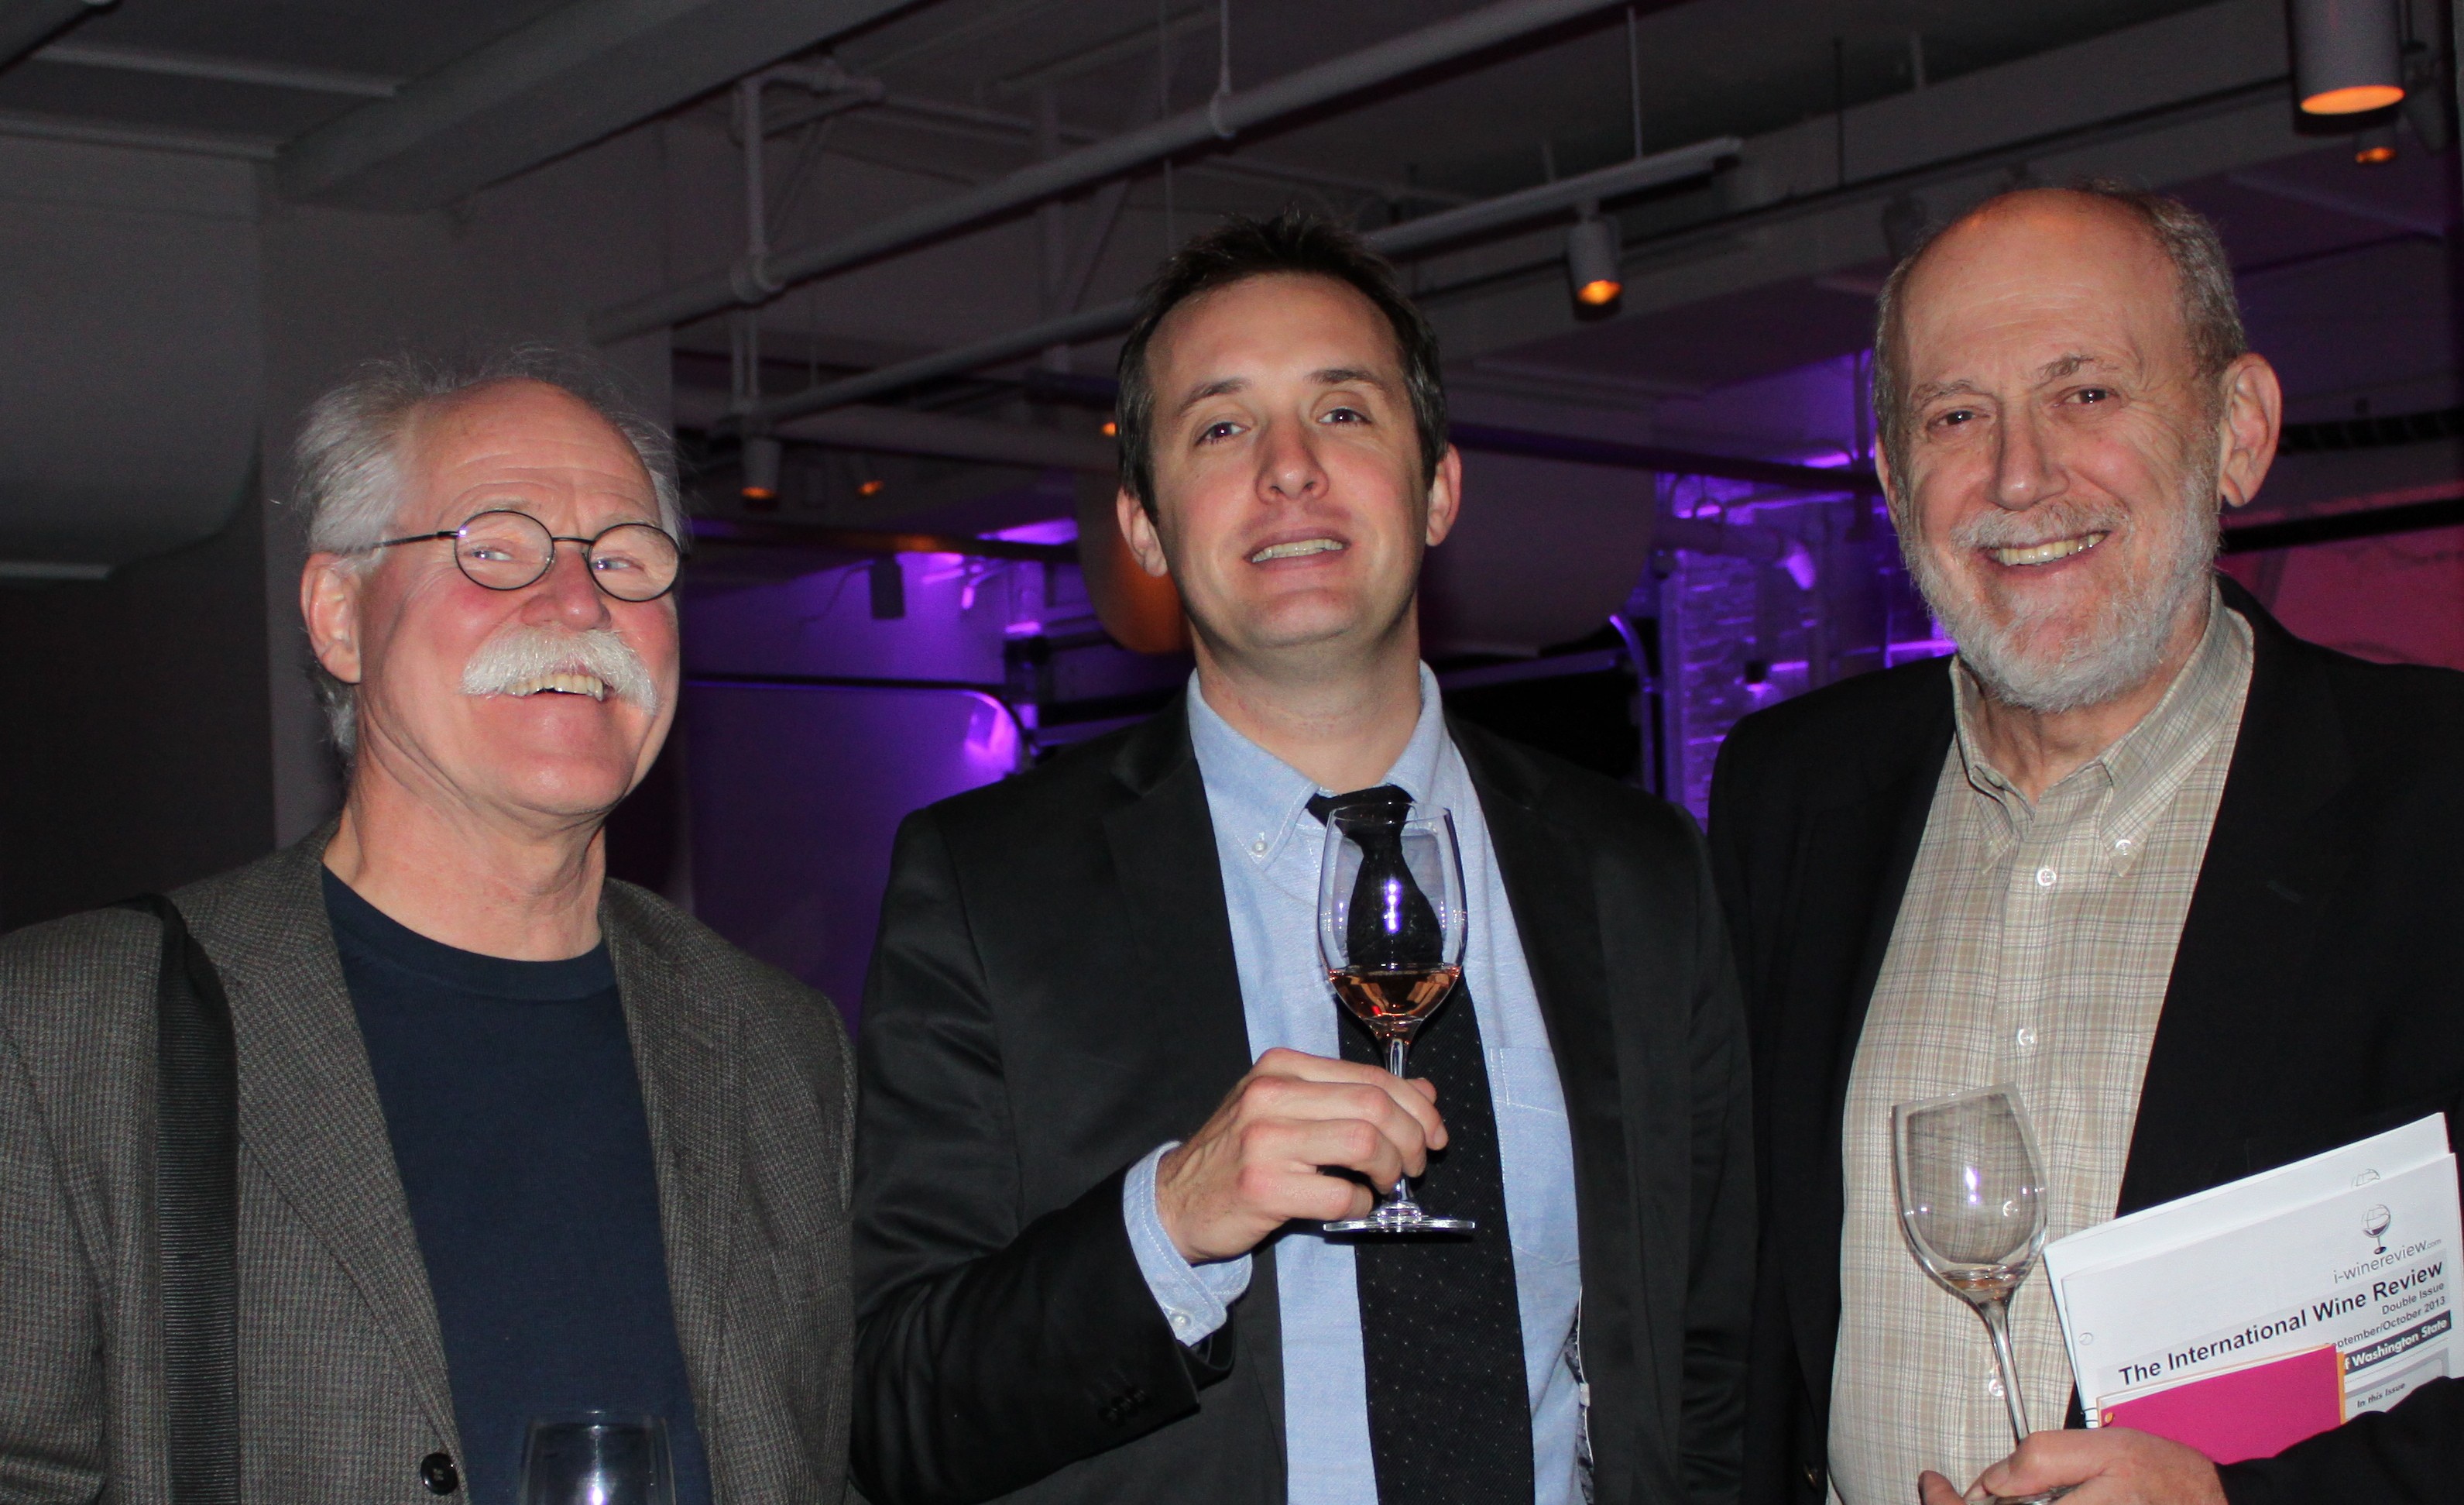 Pierre Casenave (center) with Don Winkler (l) and Mike Potashnik (r)